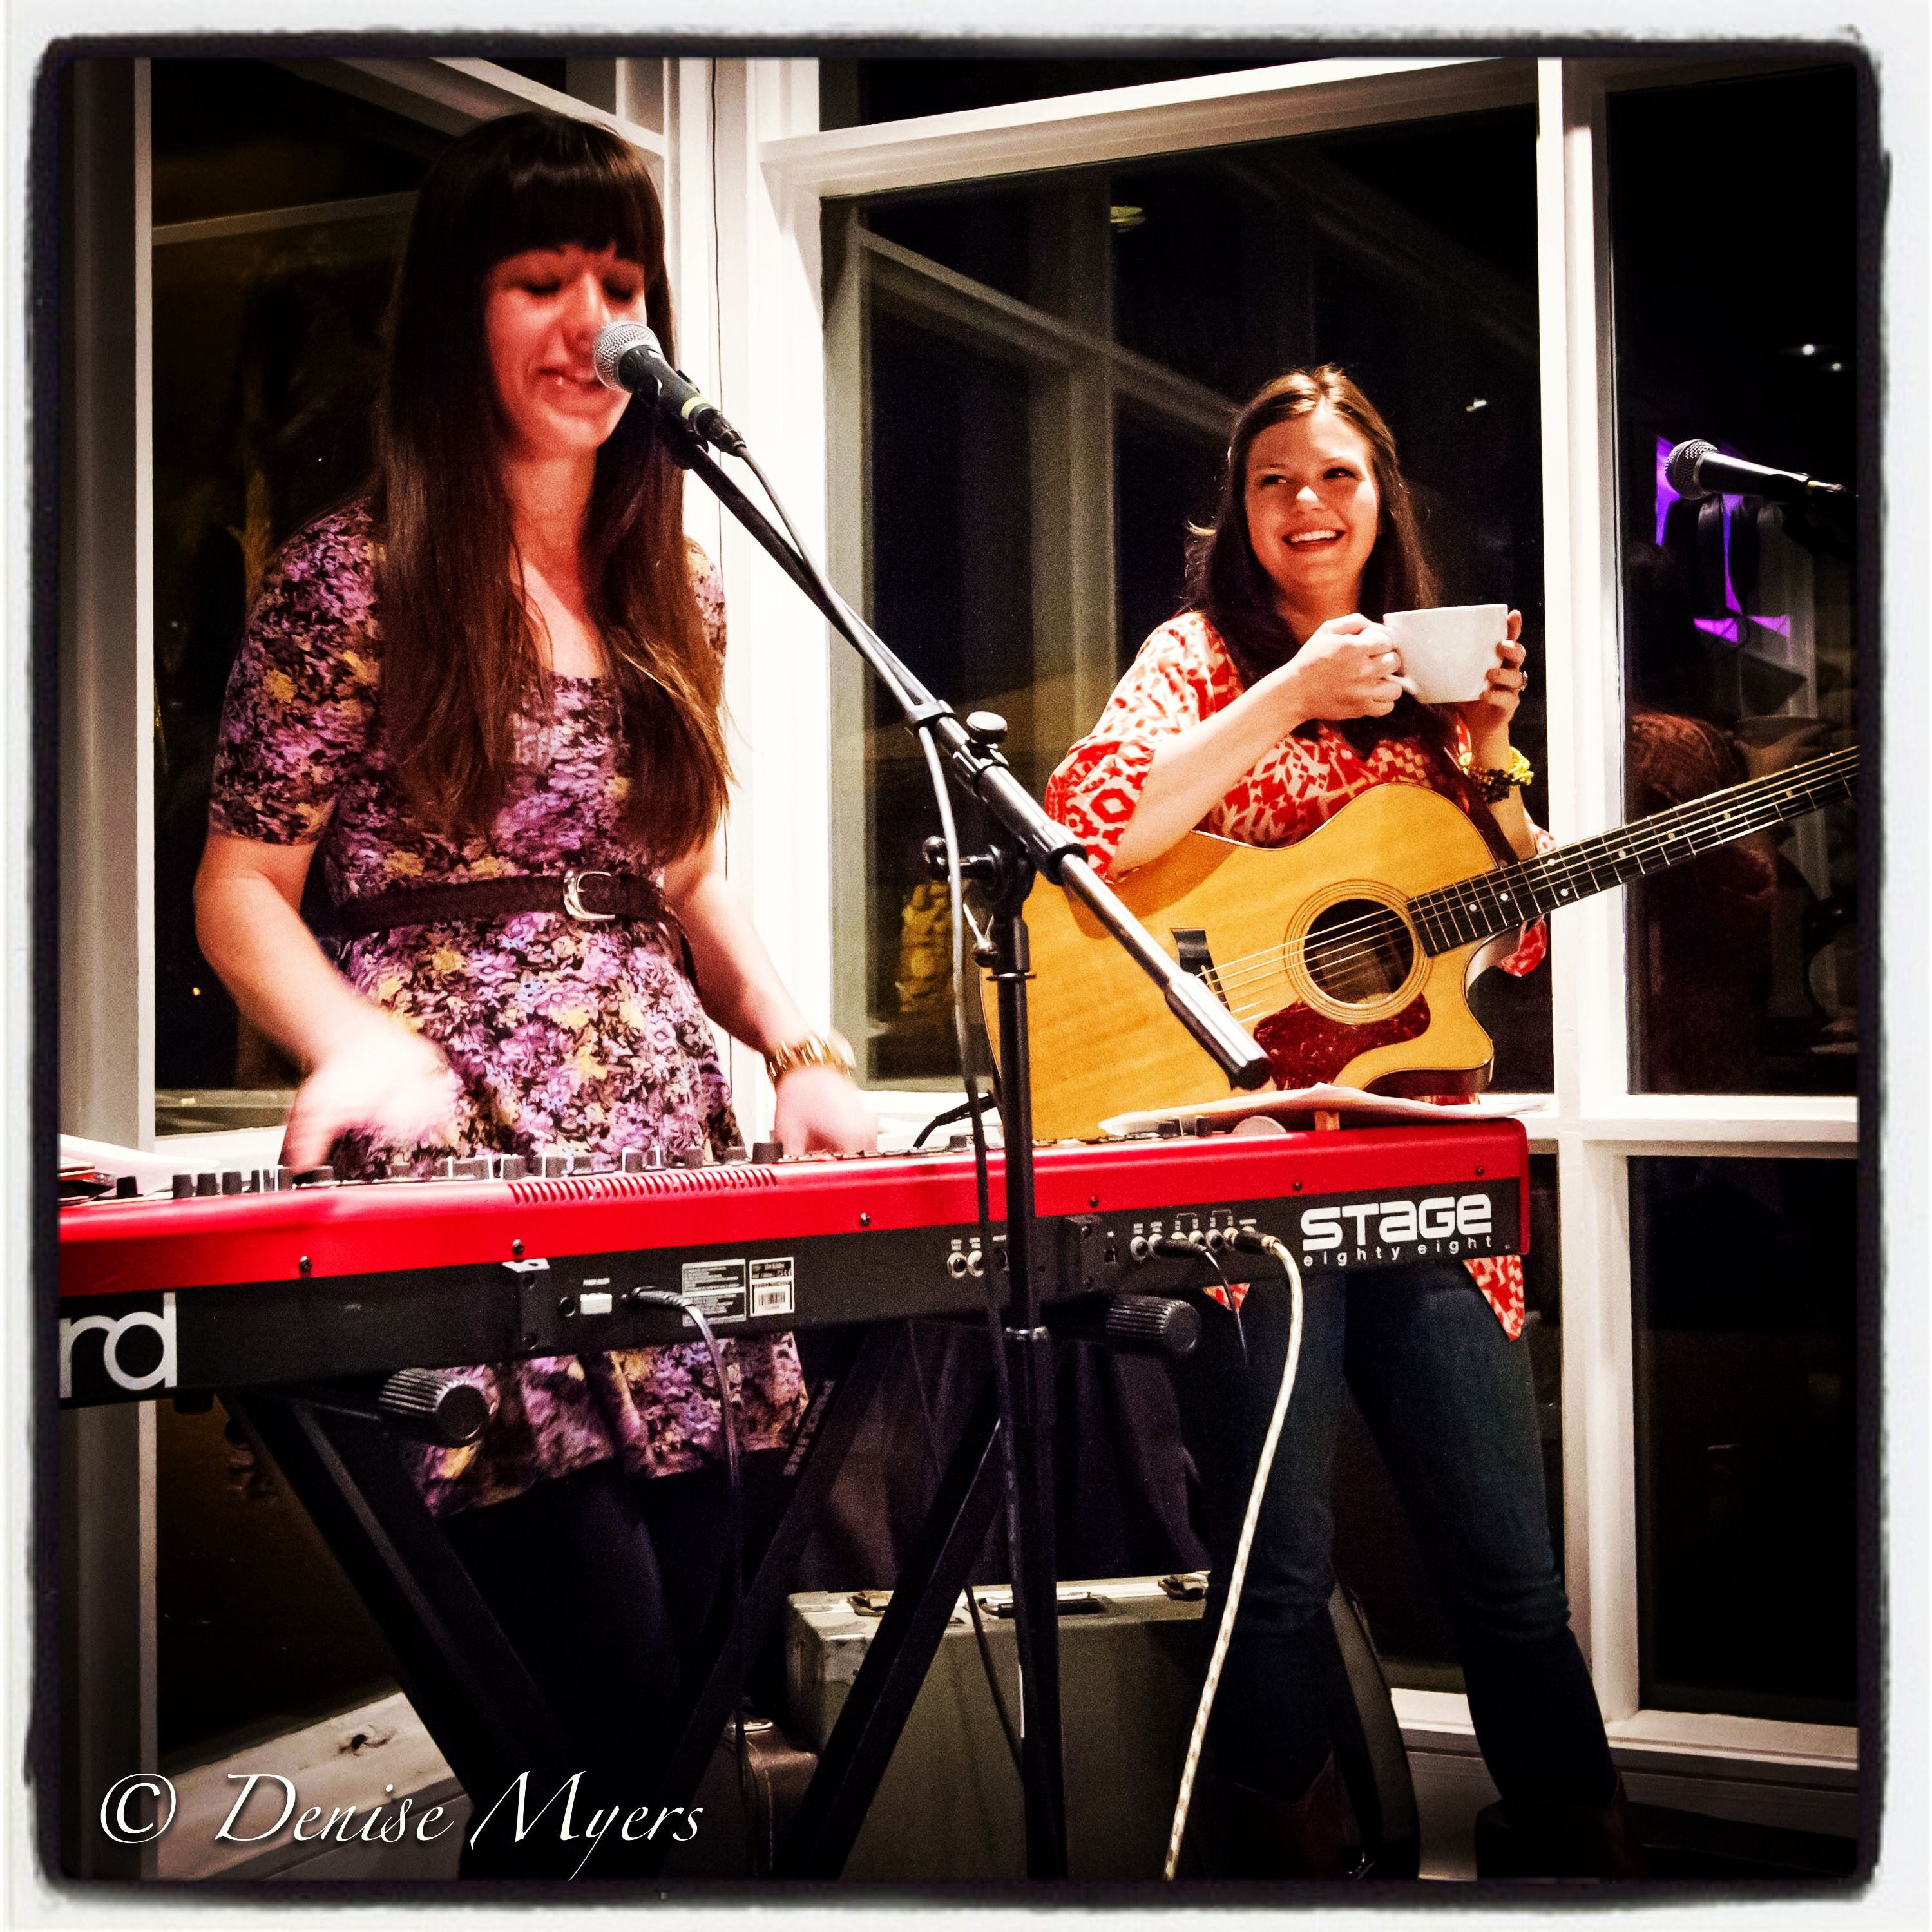 2-9-2013 Good music, good coffee, and a good night thanks to Sara Beth Go, Jessica Campbell, and Sola.